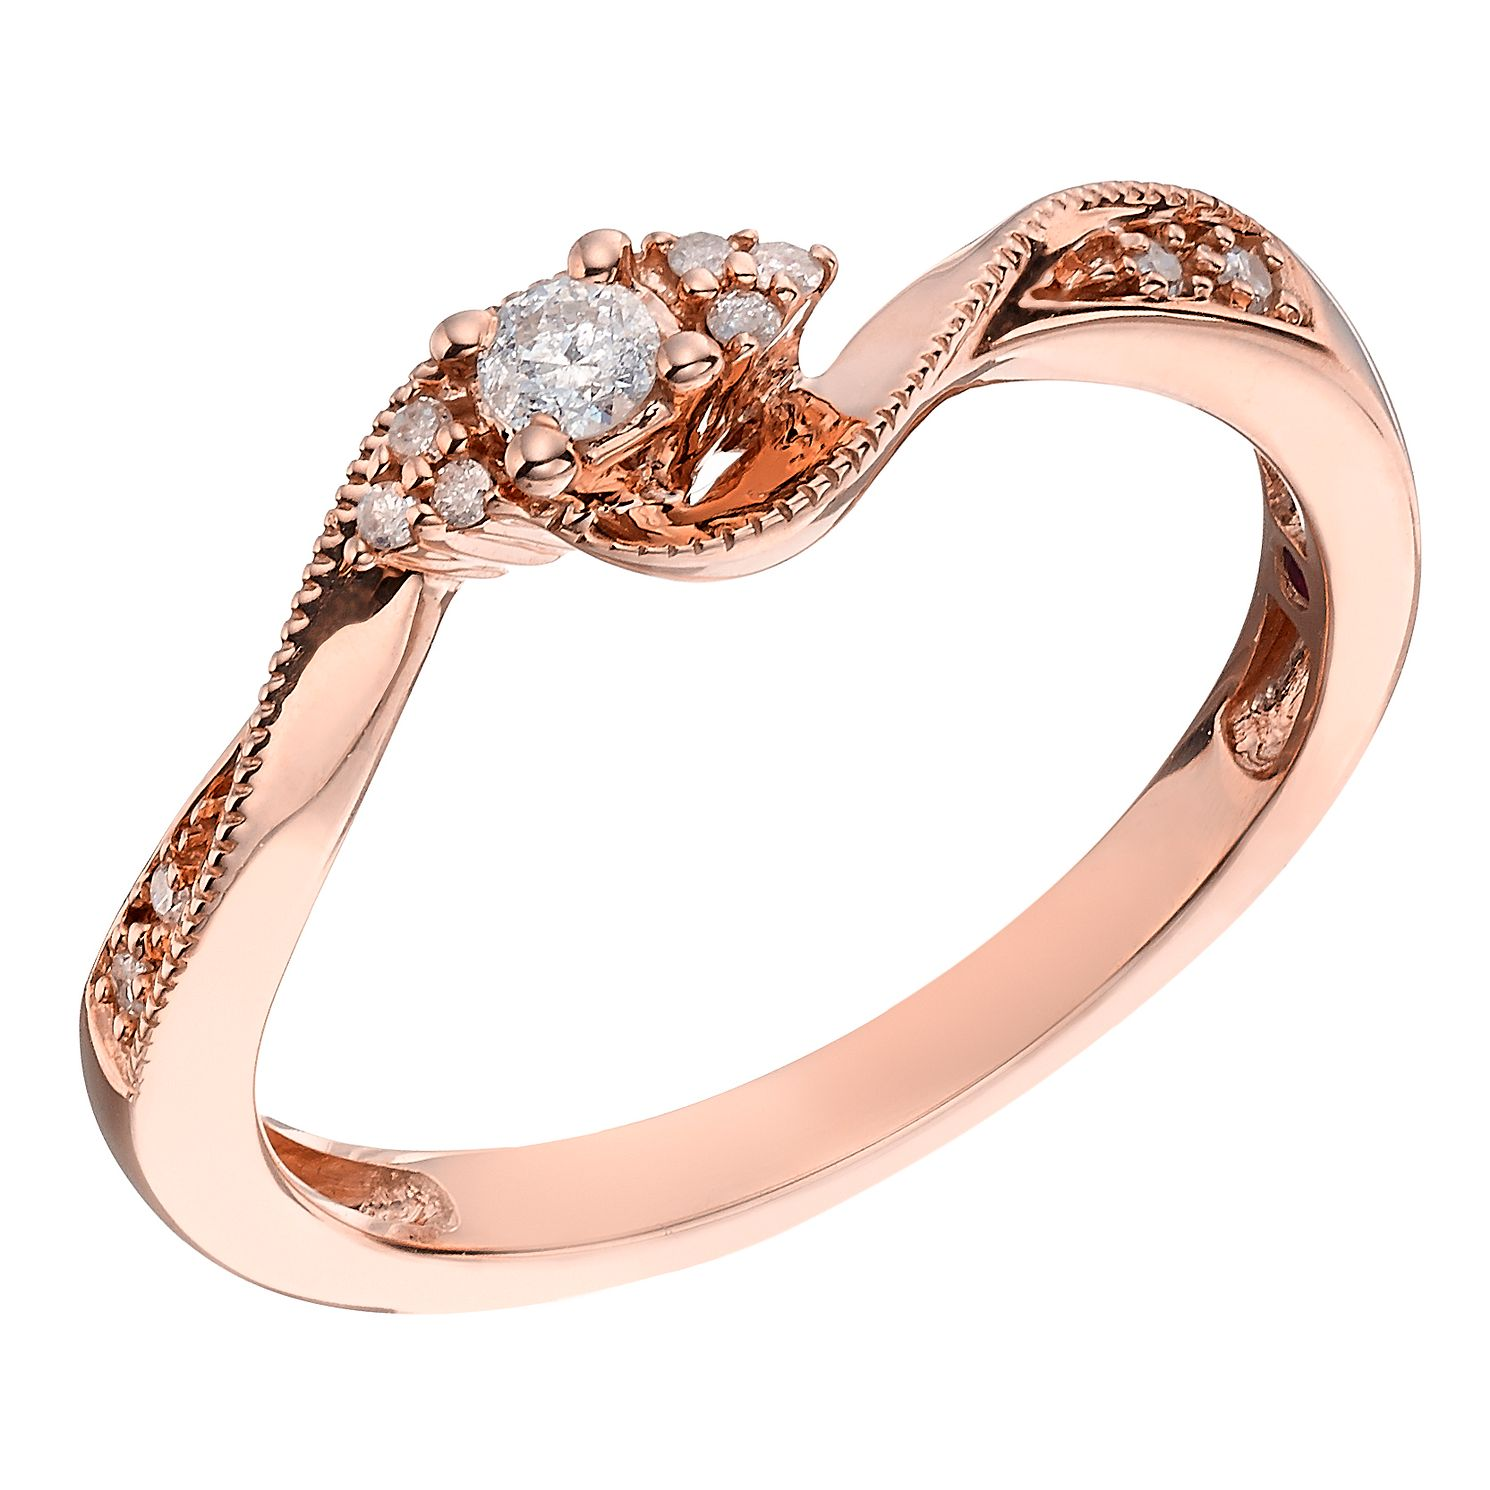 rings diamond milgrain rose with white jenny packham p gold oval ring carat